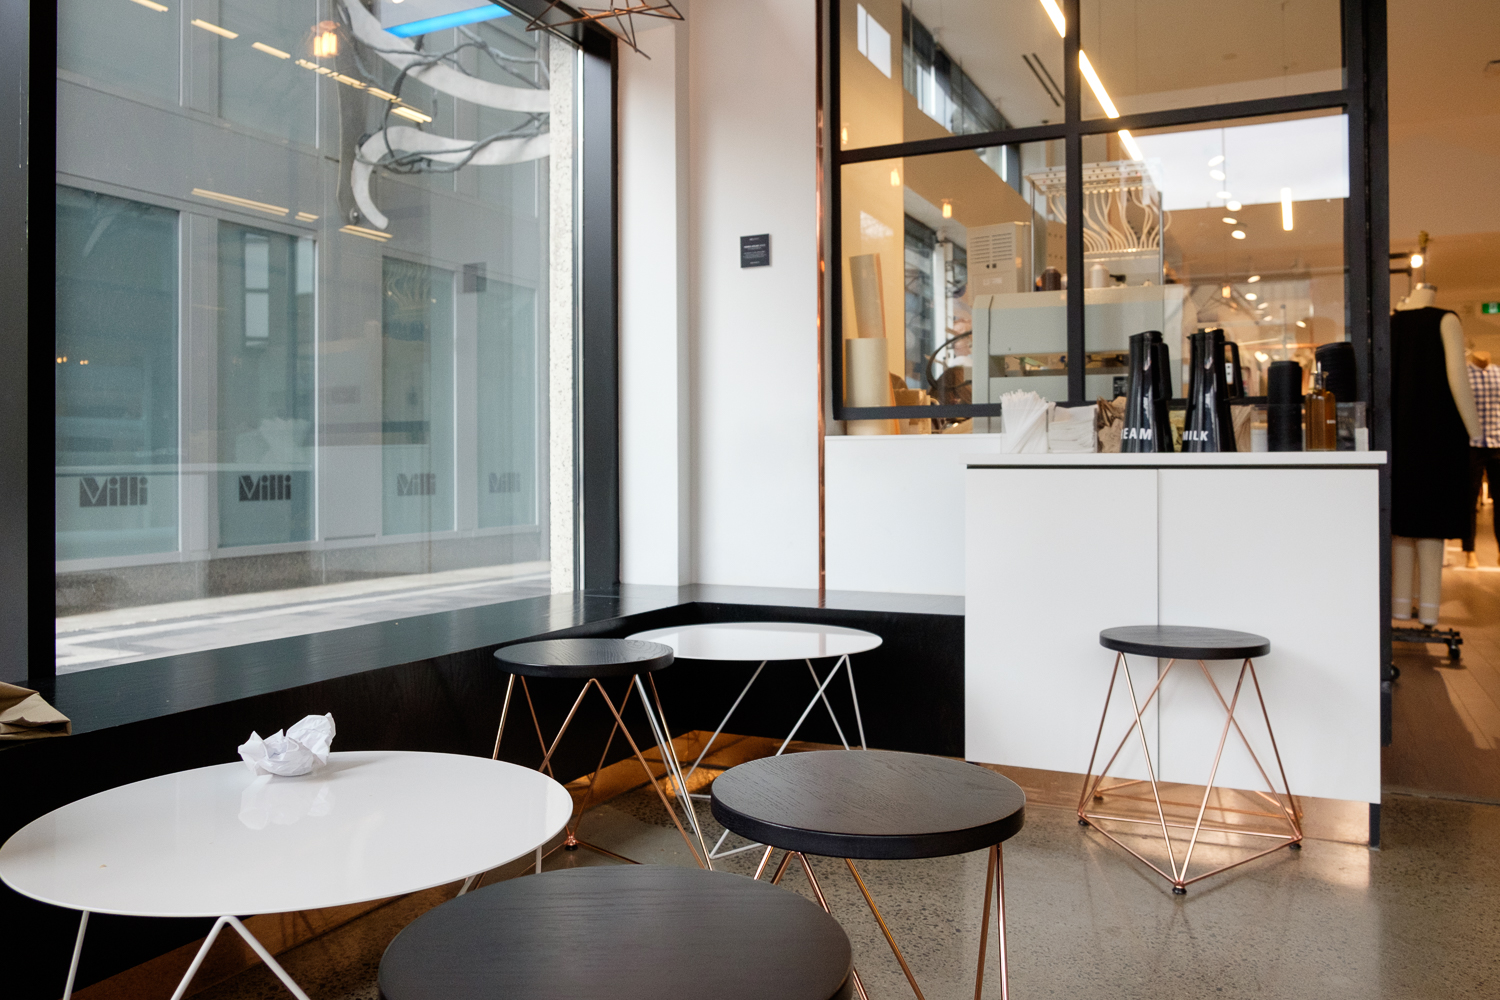 Picture of removable tables and chair inside the coffee shop